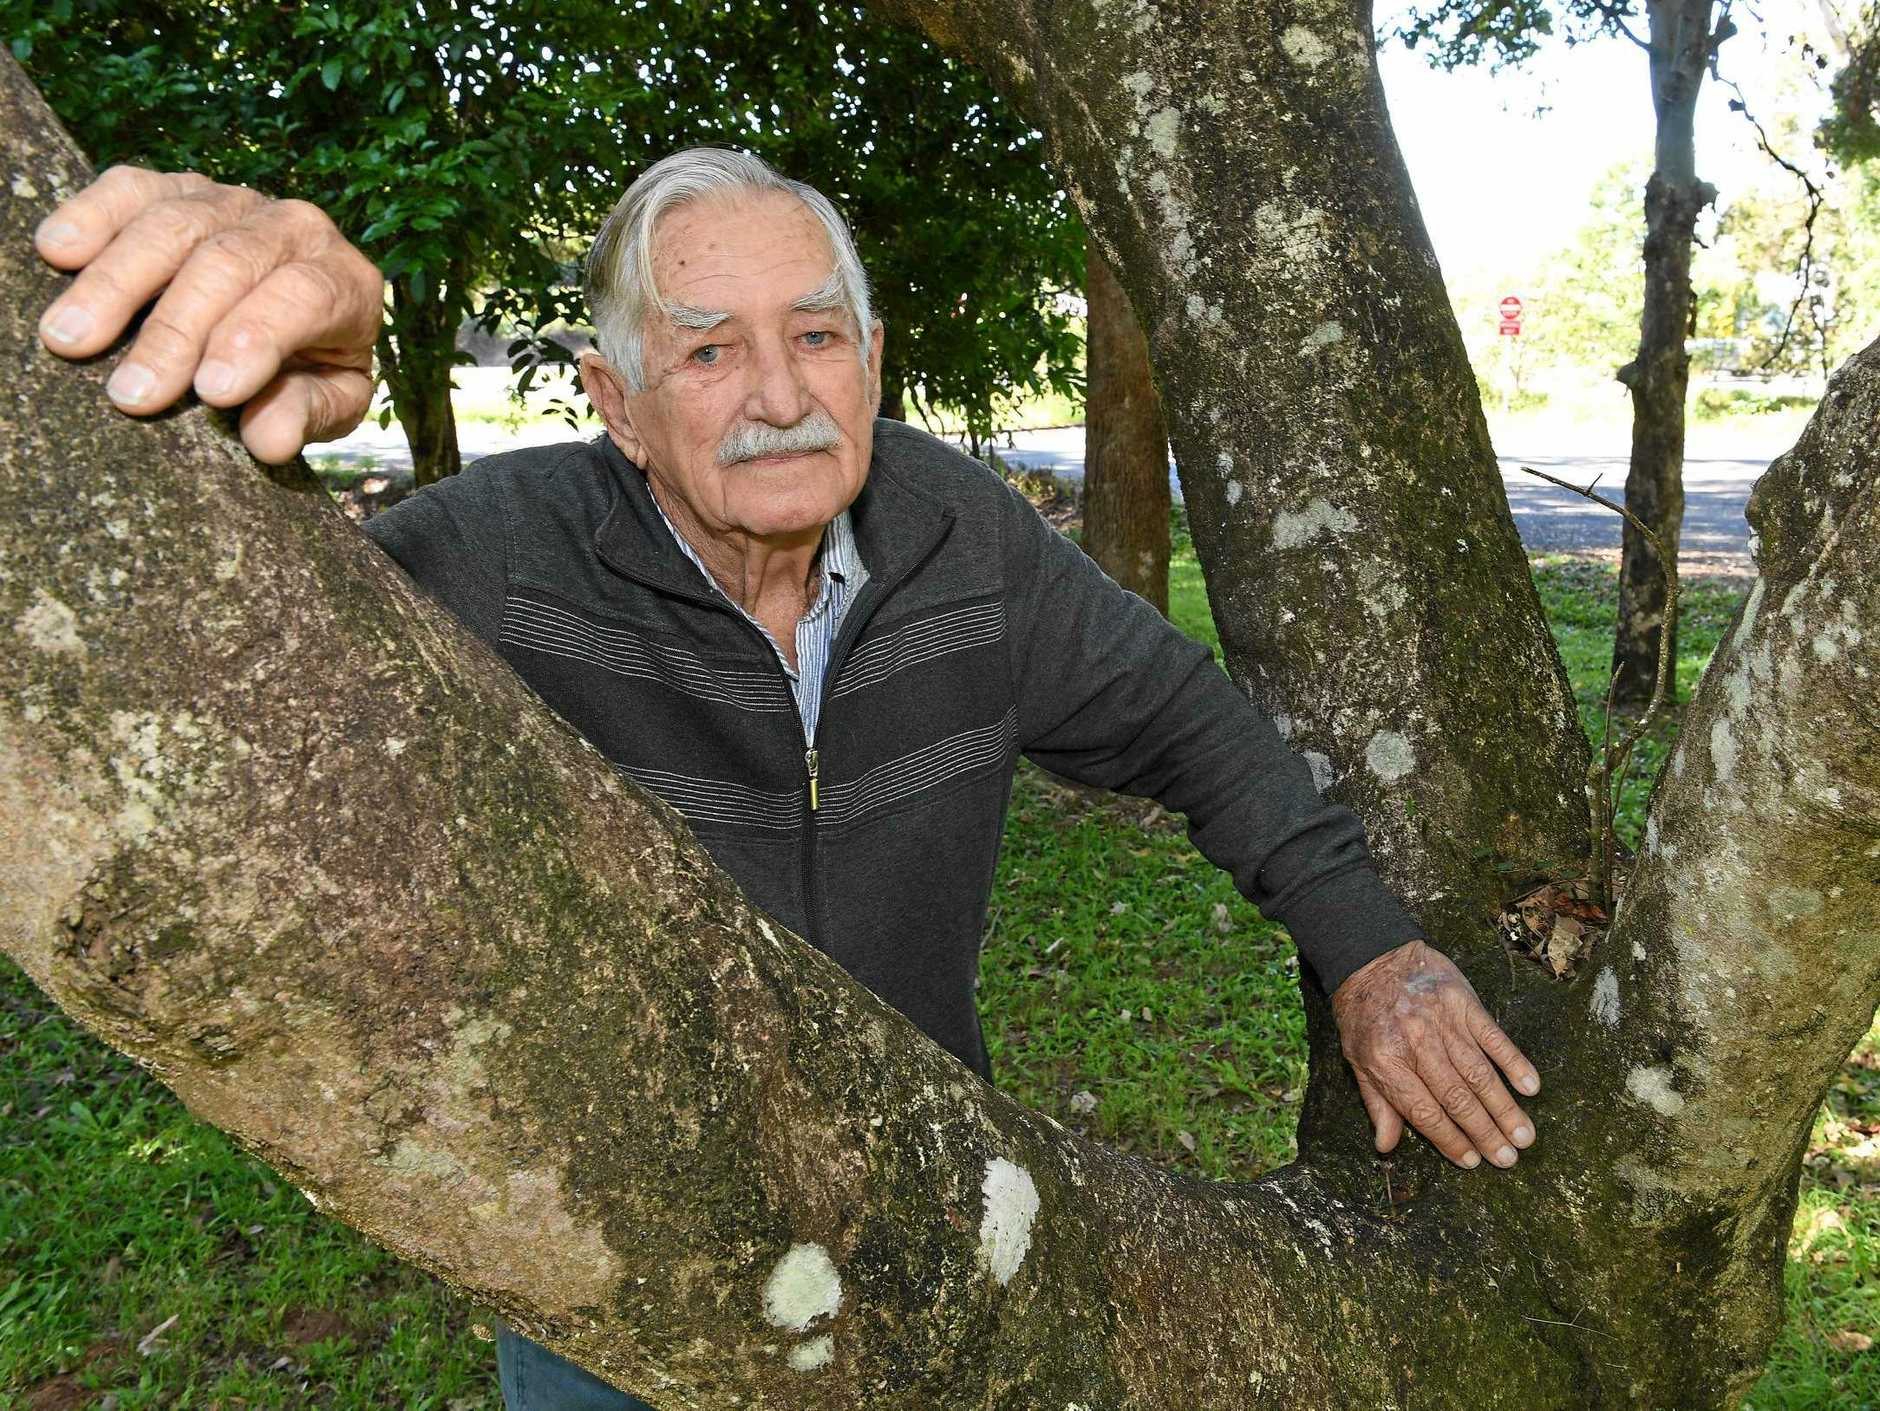 NOT HAPPY: Douglas Corbett is angry part of his property is being resumed for the Bruce Highway upgrades.